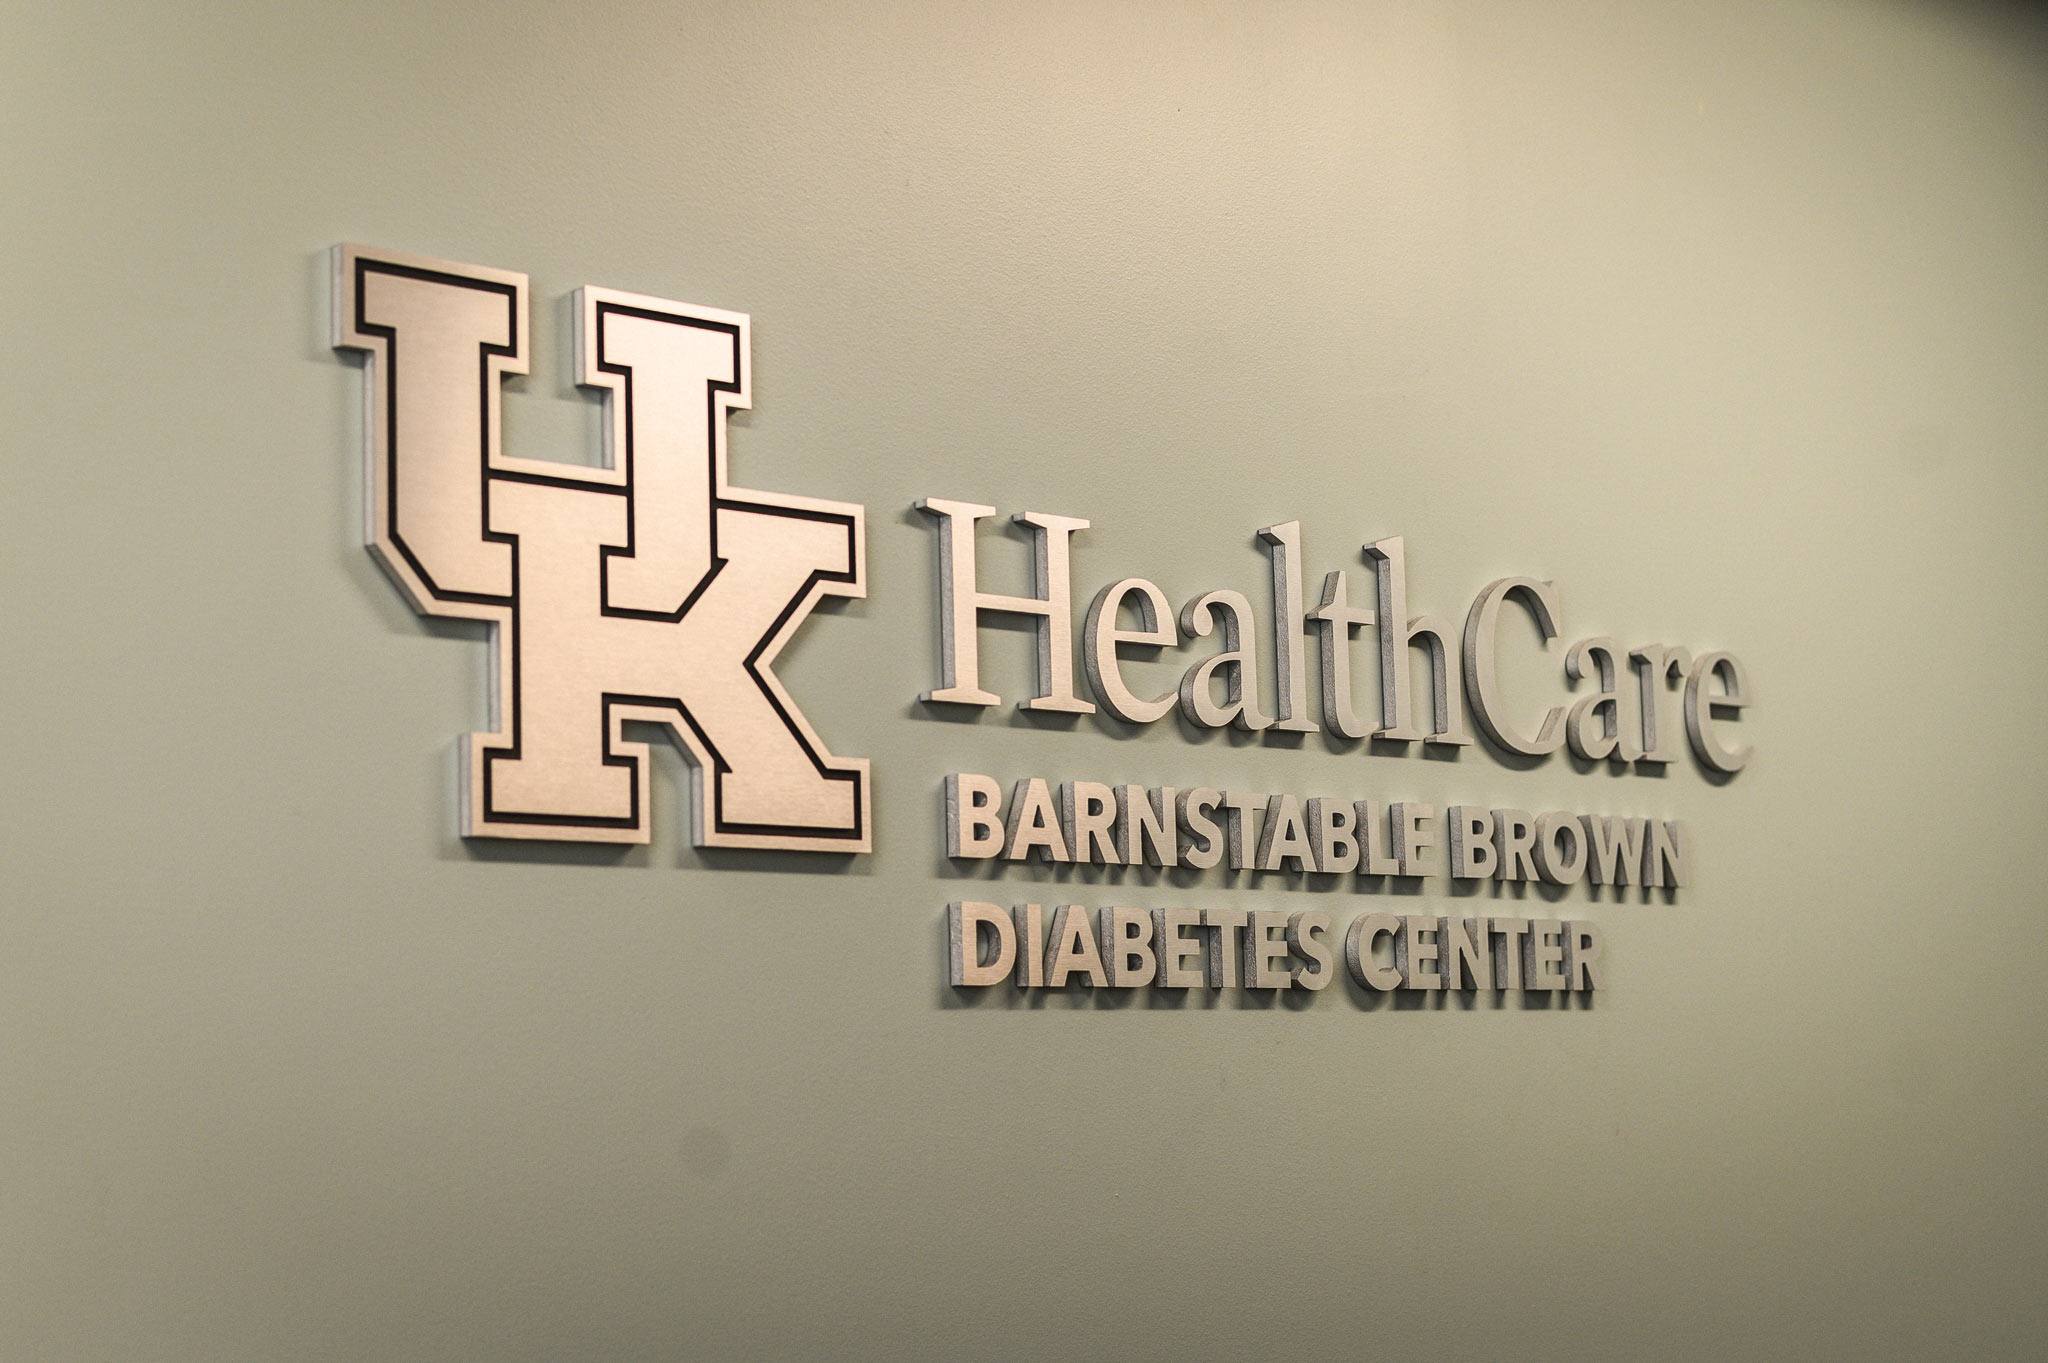 UK HealthCare Barnstable Brown Diabetes Center signage in a hallway.